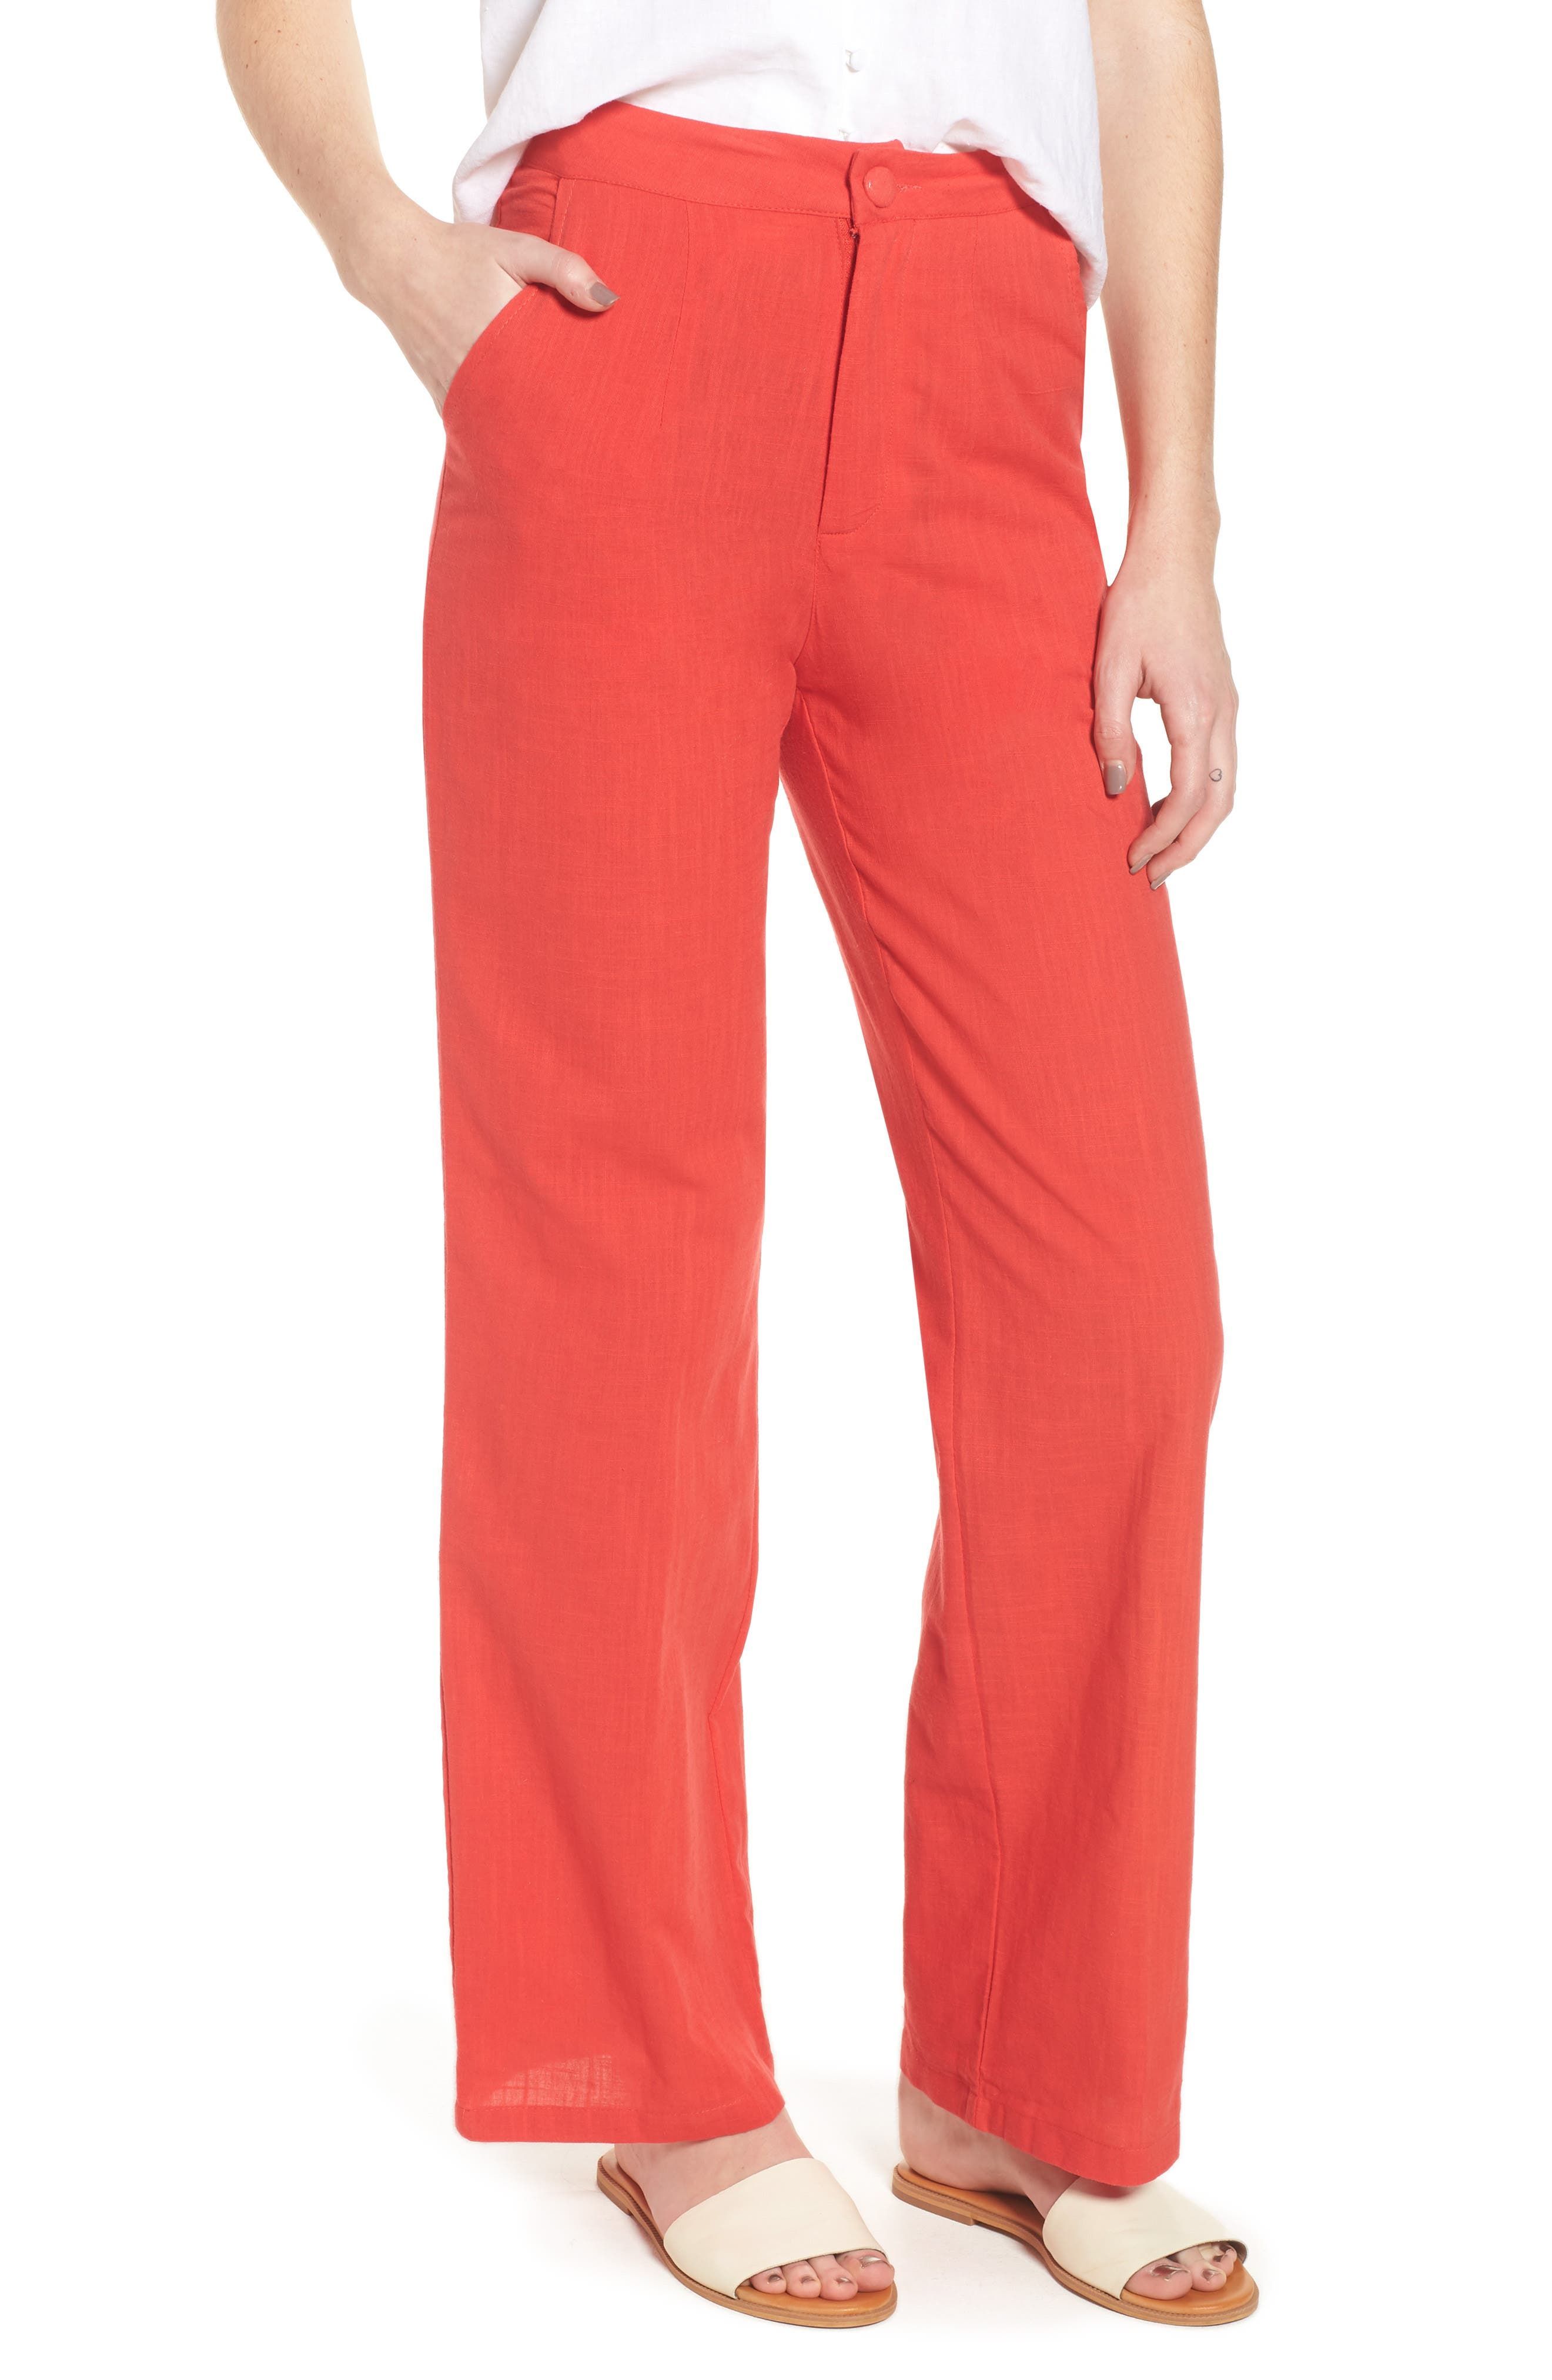 Femme Fatale High Waist Pants,                             Main thumbnail 1, color,